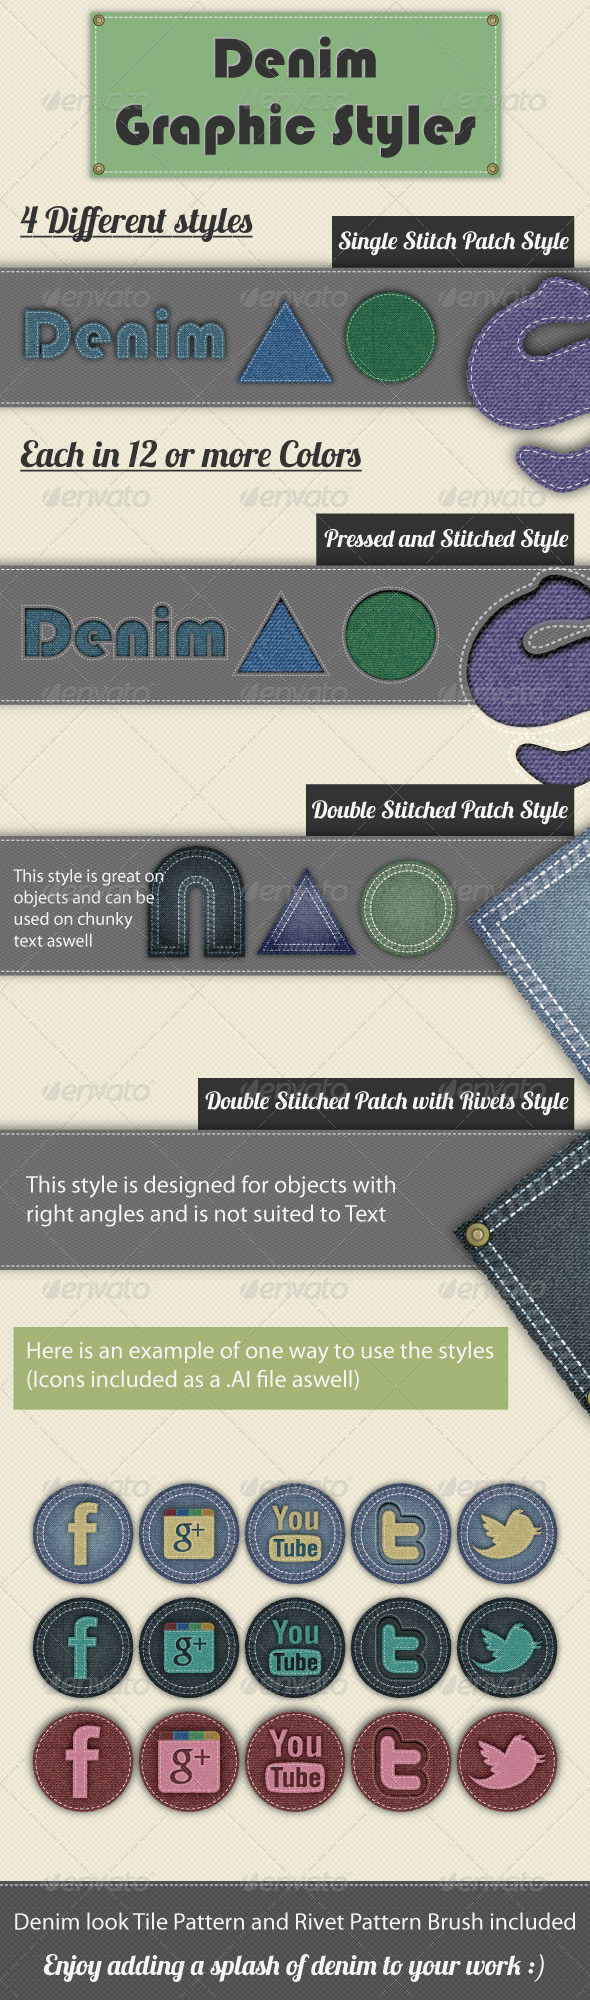 GraphicRiver Denim Graphic Styles For Illustrator 2425388